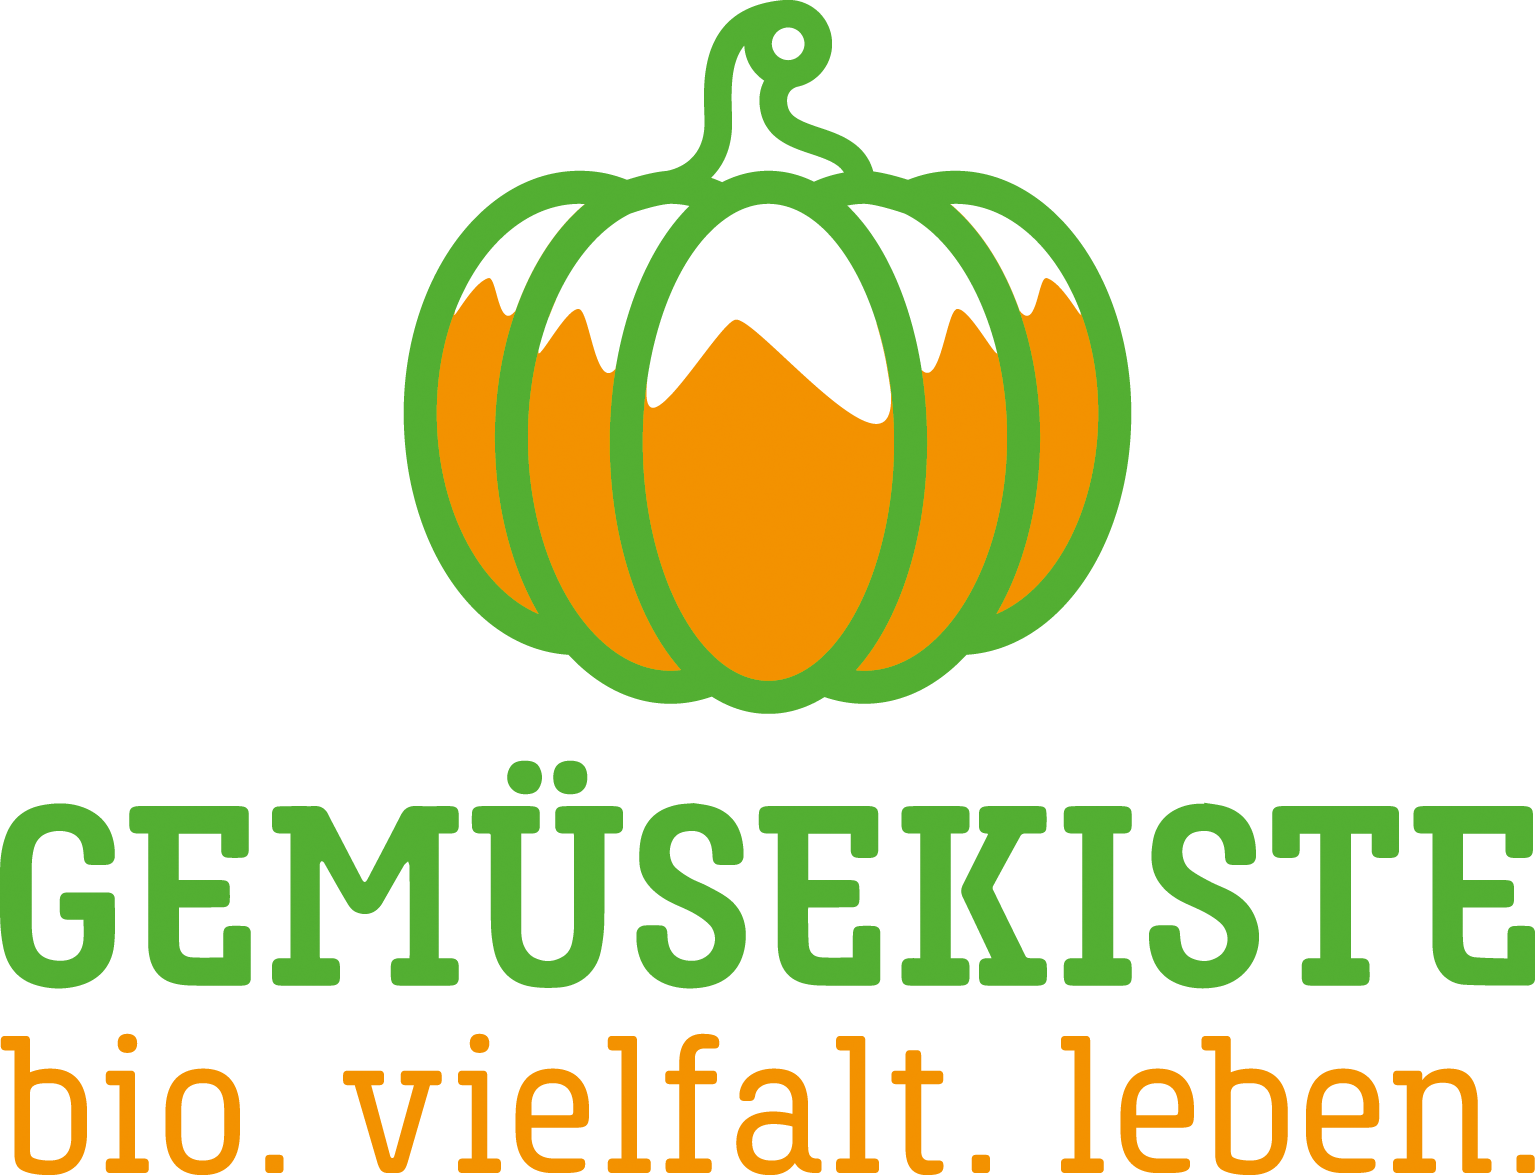 Gemüsekiste - bio. vielfalt. leben.